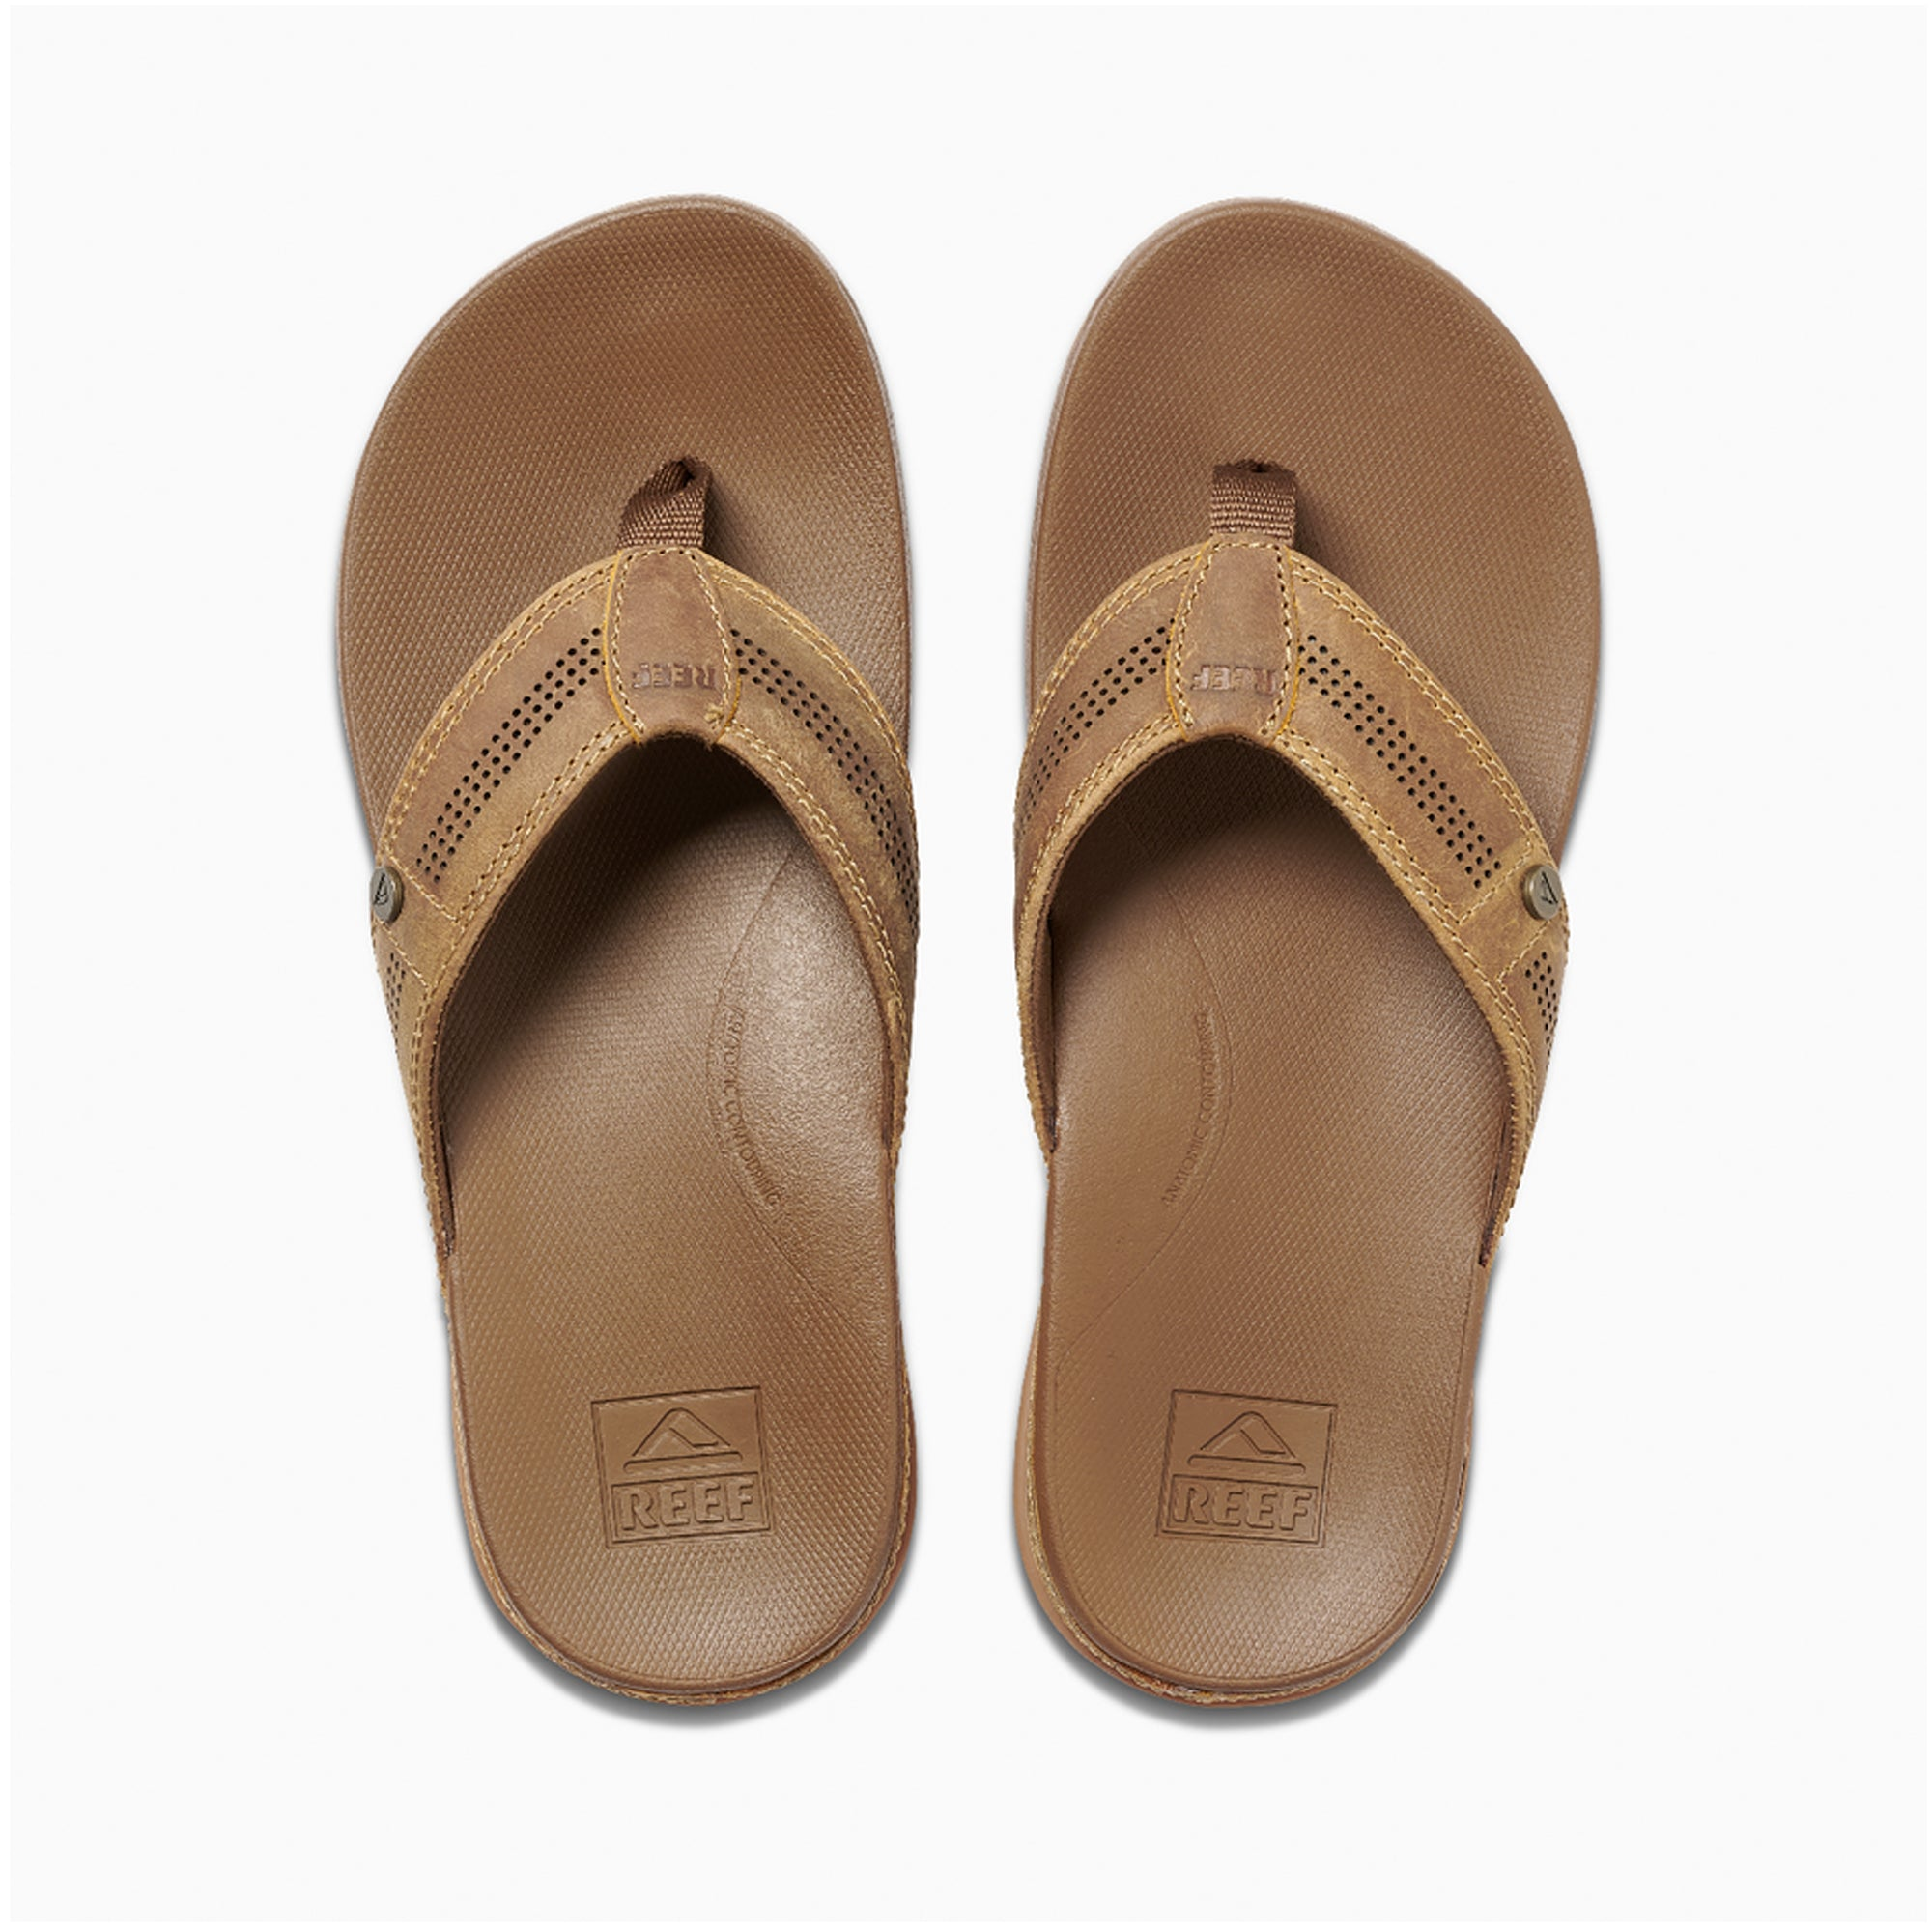 Reef Cushion Lux Men's Sandals - Toffee